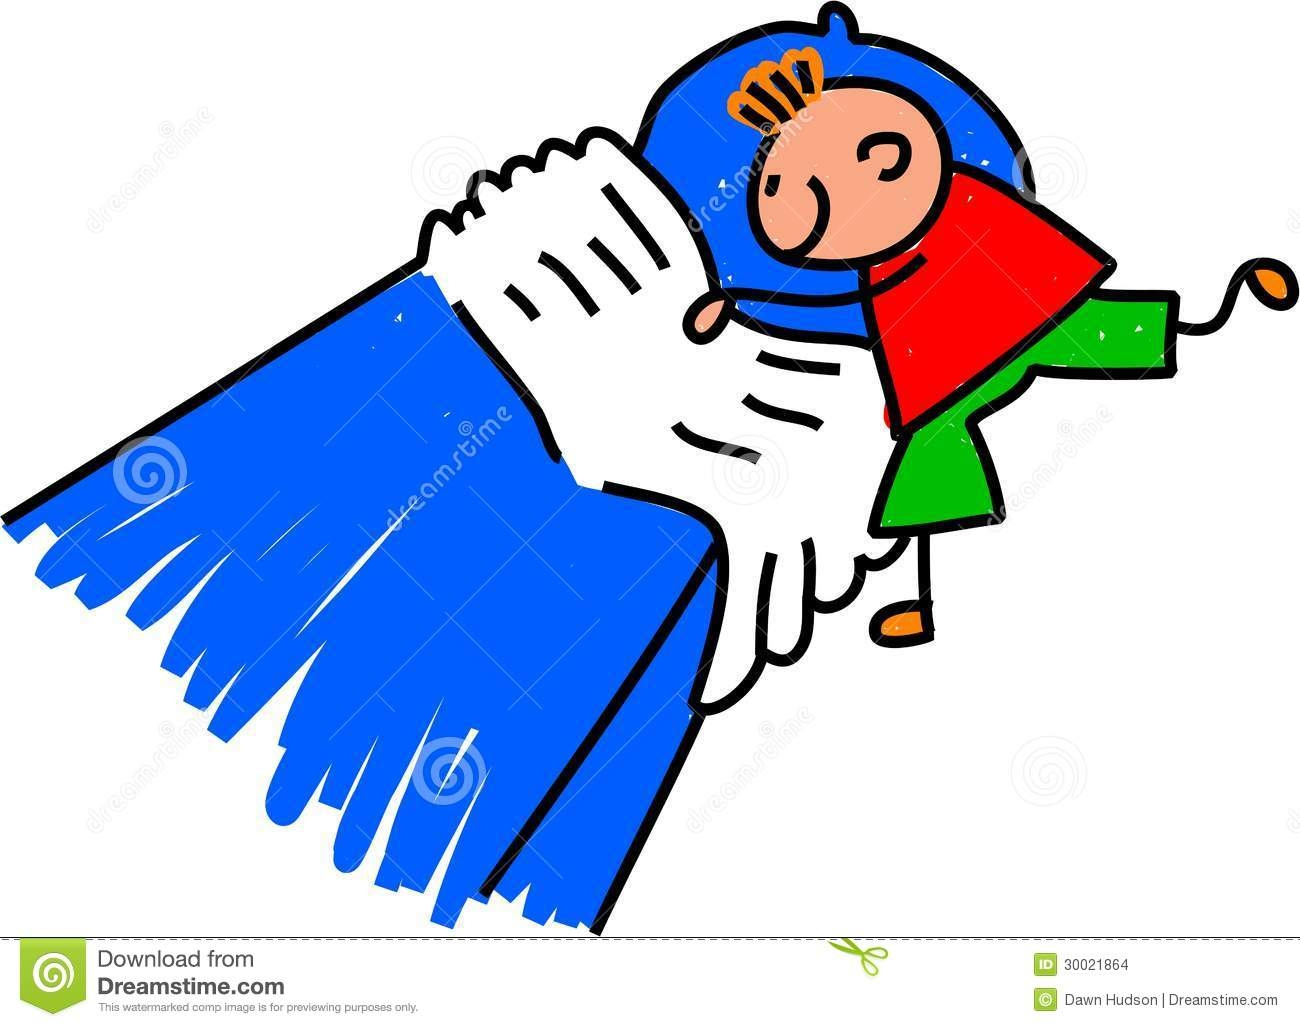 Young Boy Making Bed - Make Bed Clip Art